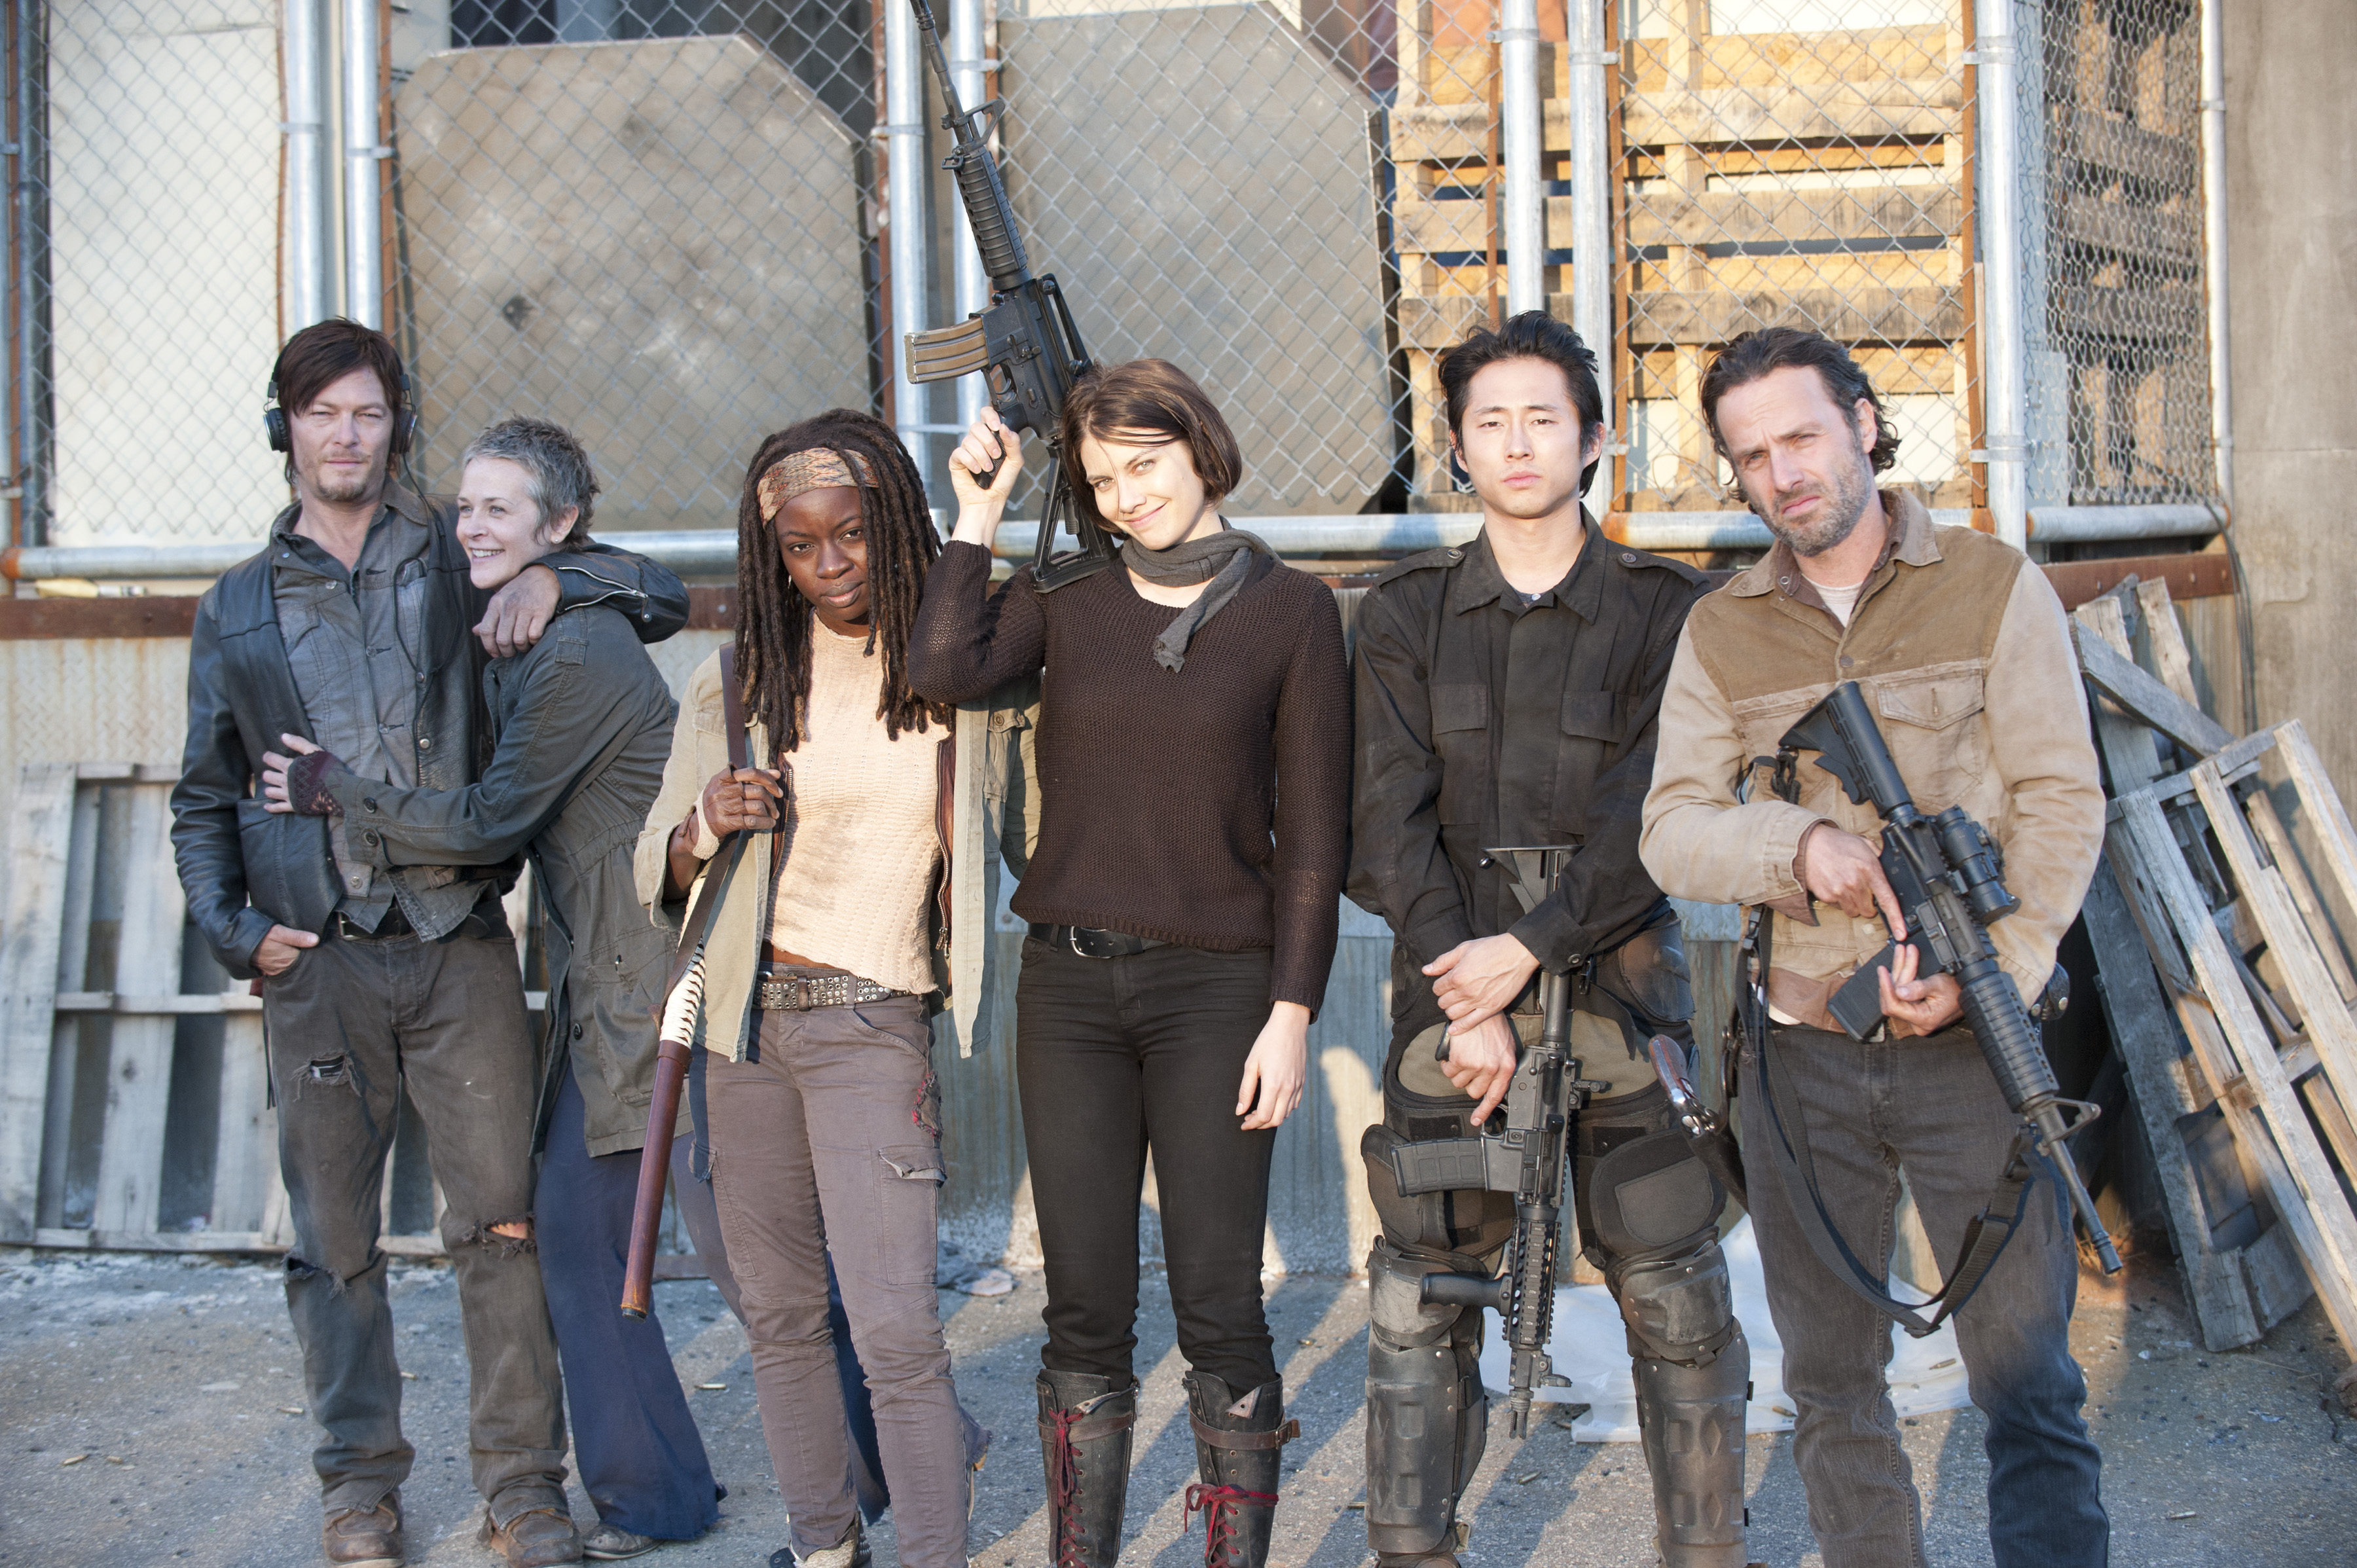 The Walking Dead - 3x16 - Welcome to the Tombs - Behind the Scenes